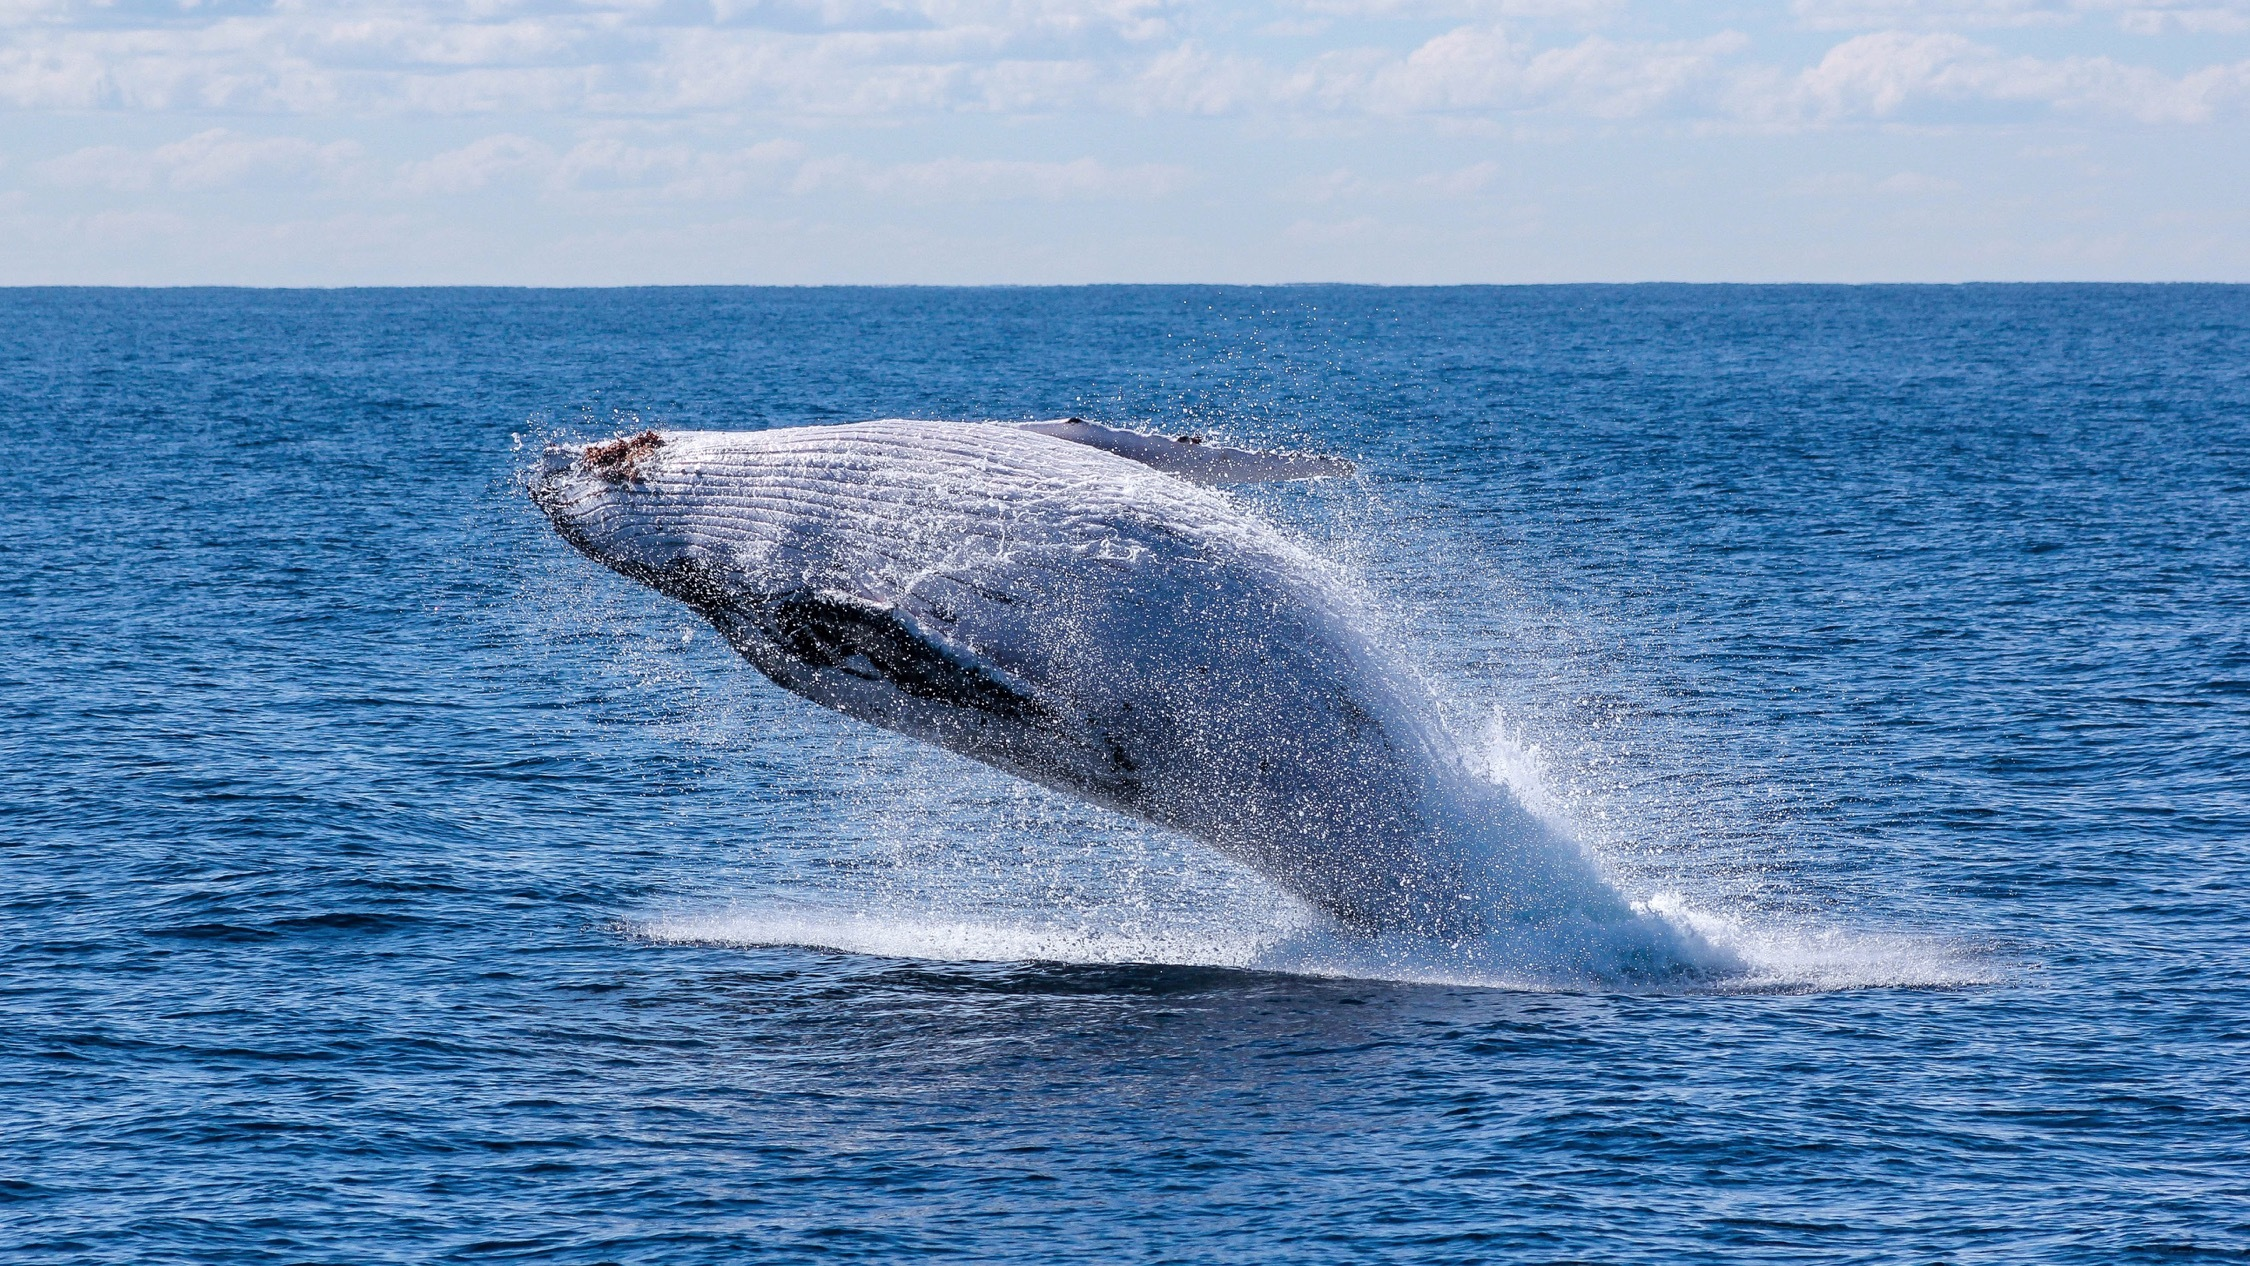 Where to go whale watching near Melbourne